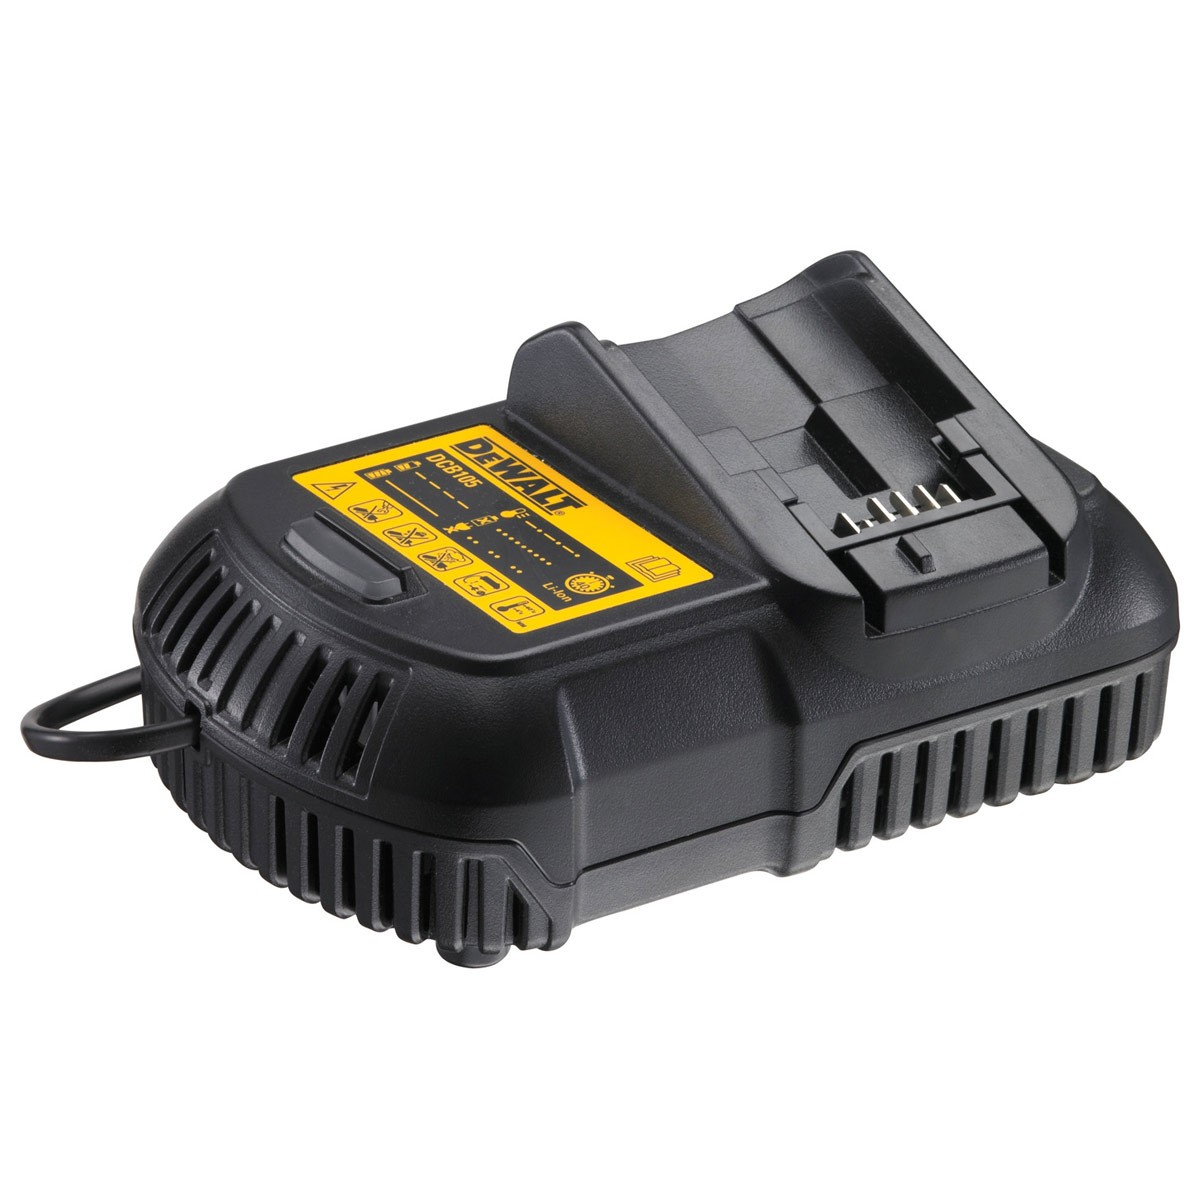 DeWalt DCB105 Lithium-Ion Battery Charger for 10.8v, 14.4v and 18v XR Batteries